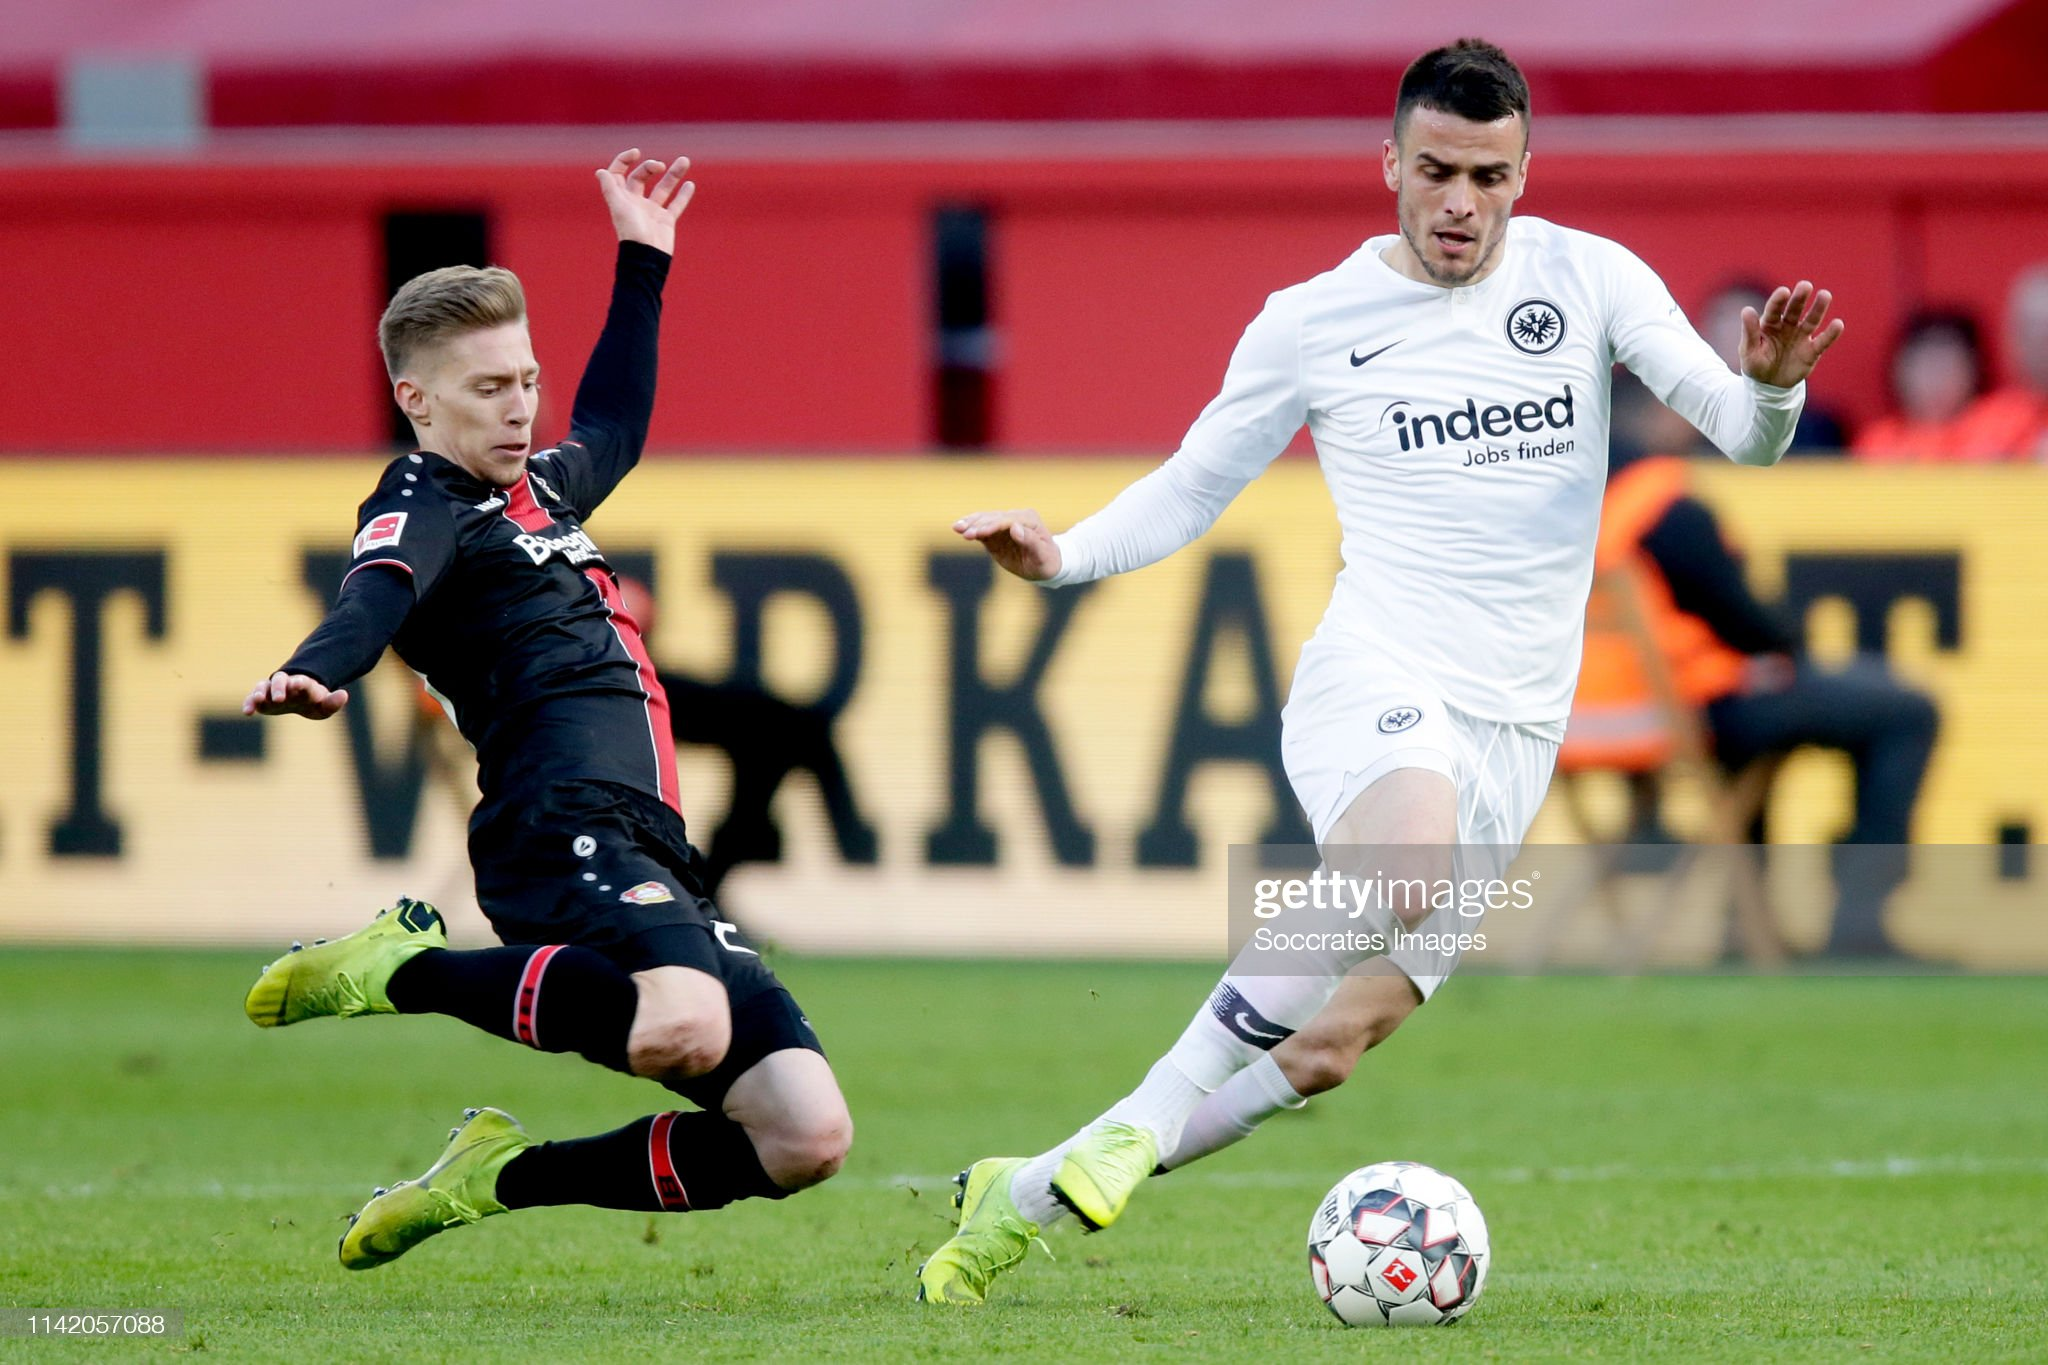 Eintracht Frankfurt v Bayer Leverkusen preview, prediction and odds